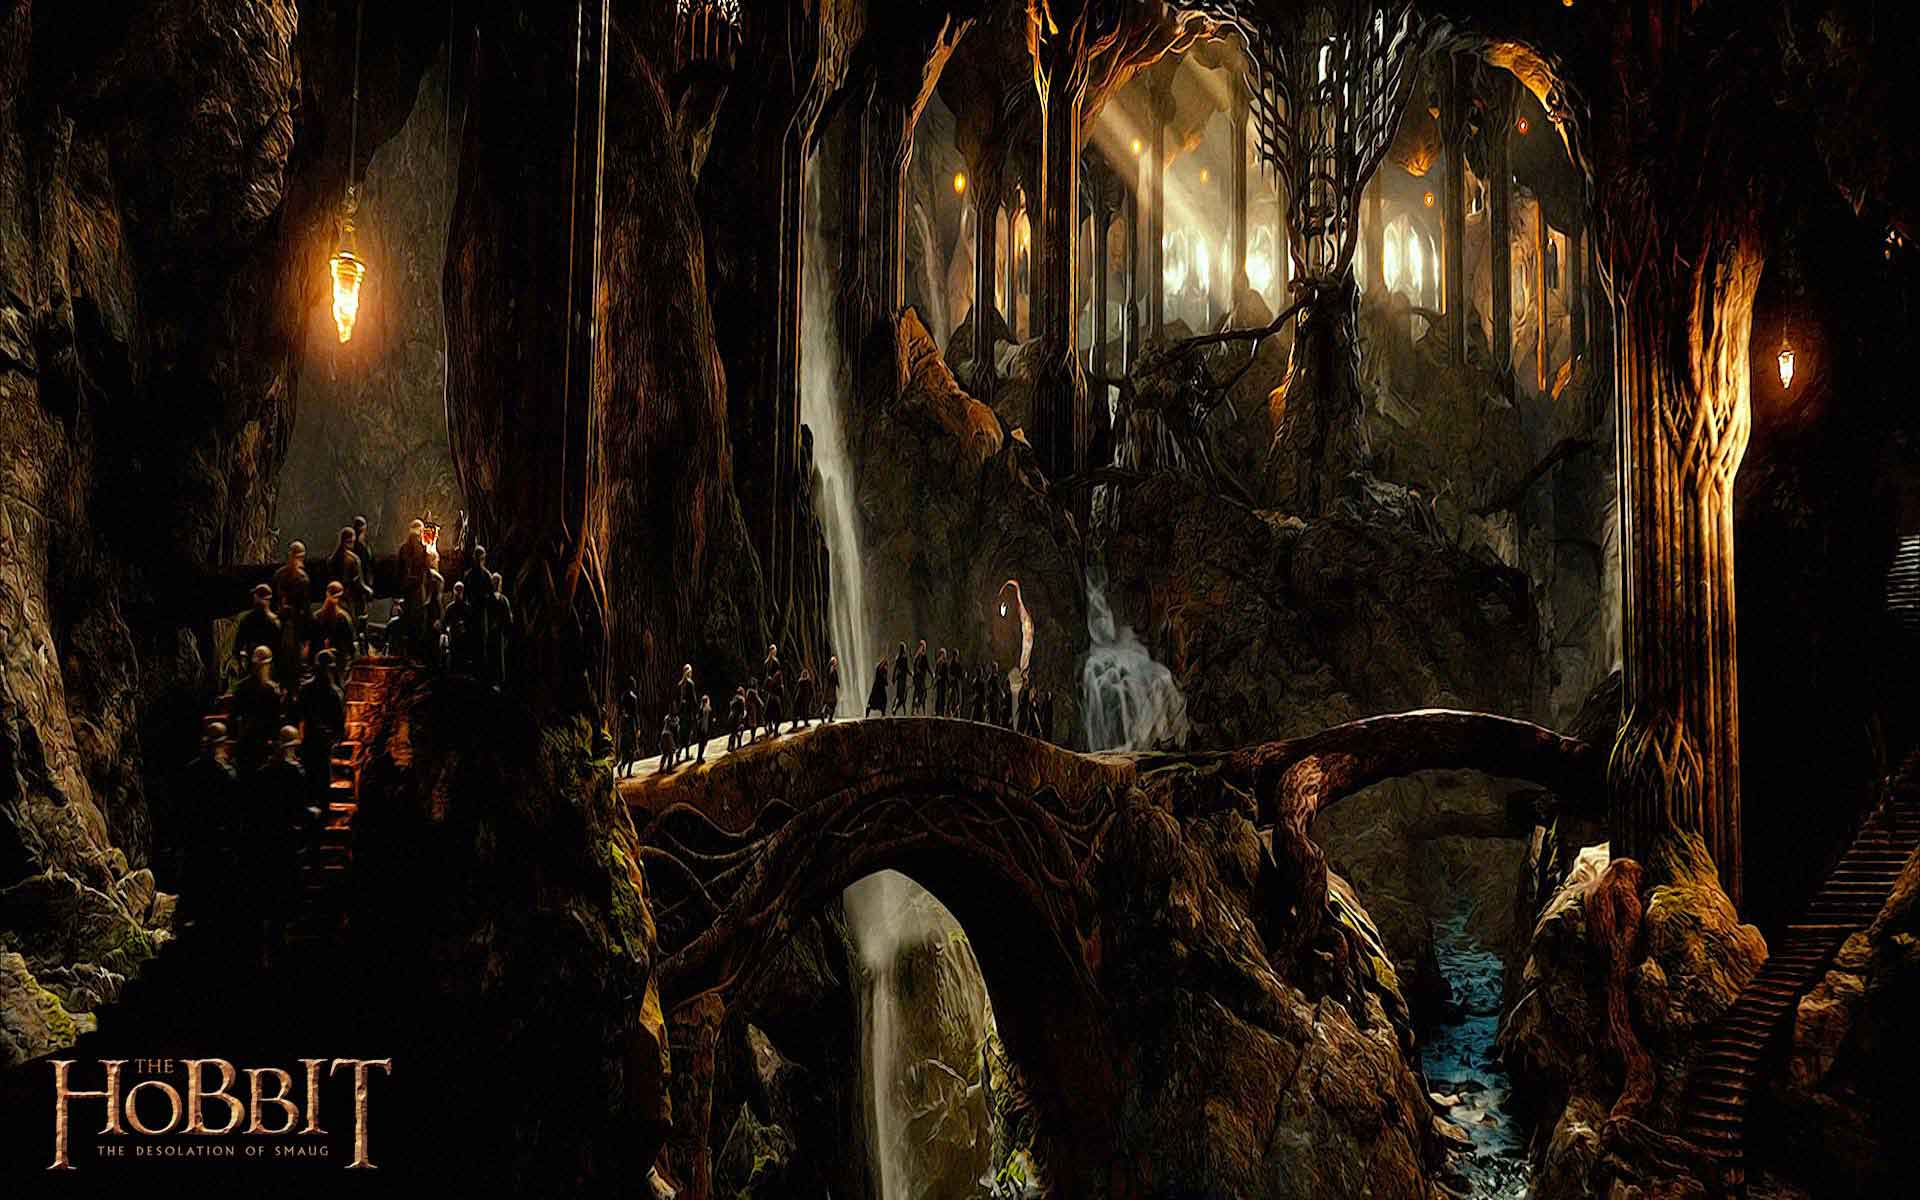 30+ The Hobbit: Desolation of Smaug Wallpapers & Backgrounds